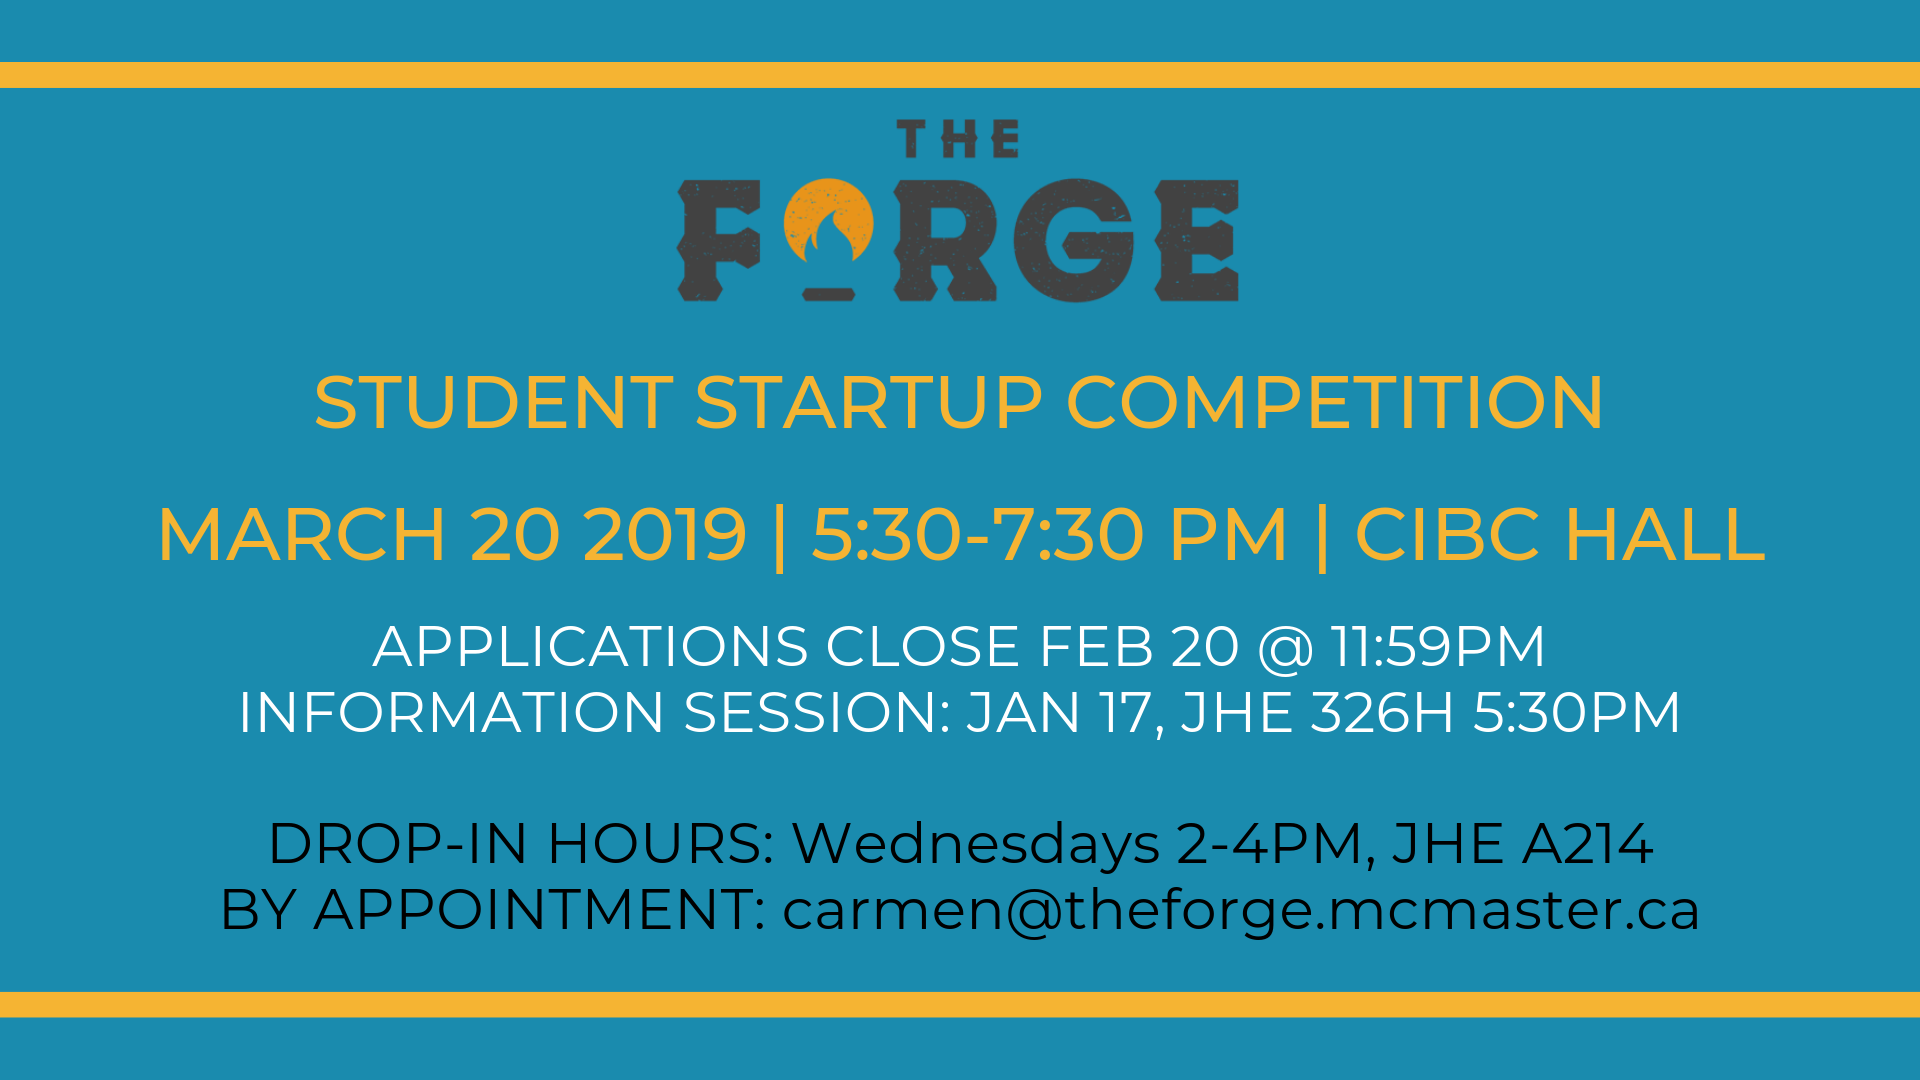 Applications open for Student Startup Competition - $100K in